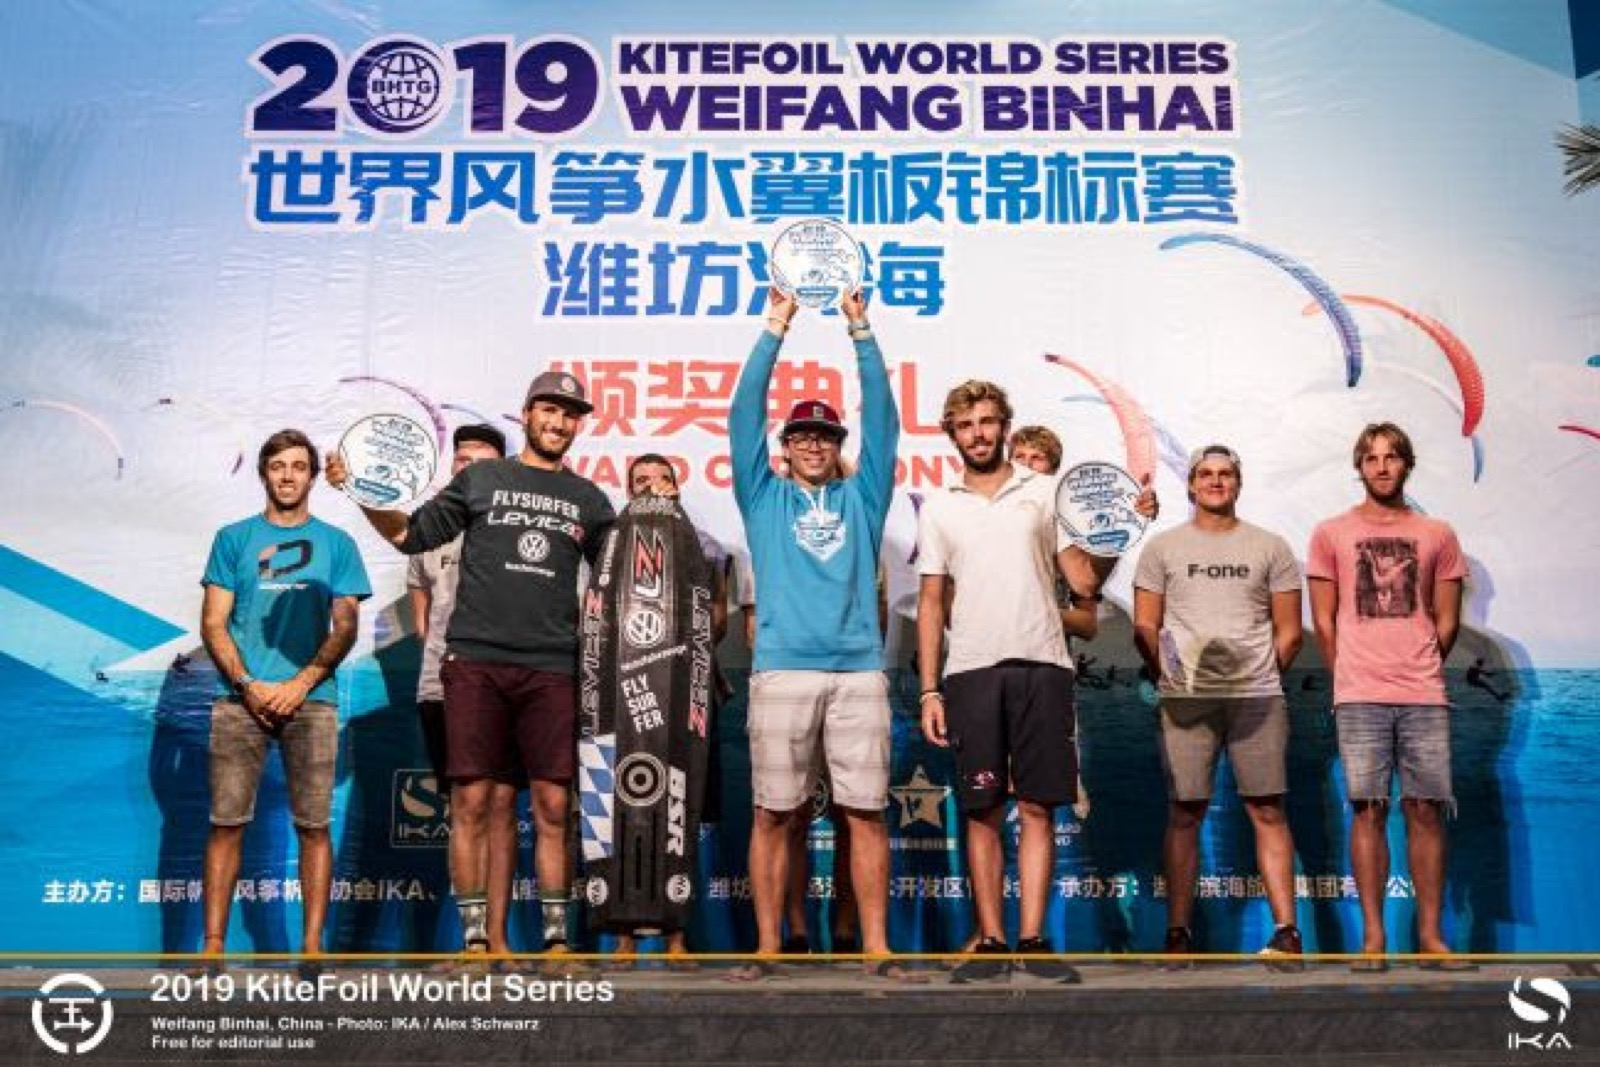 finalists for the IKA Kitefoil World Series on the podium